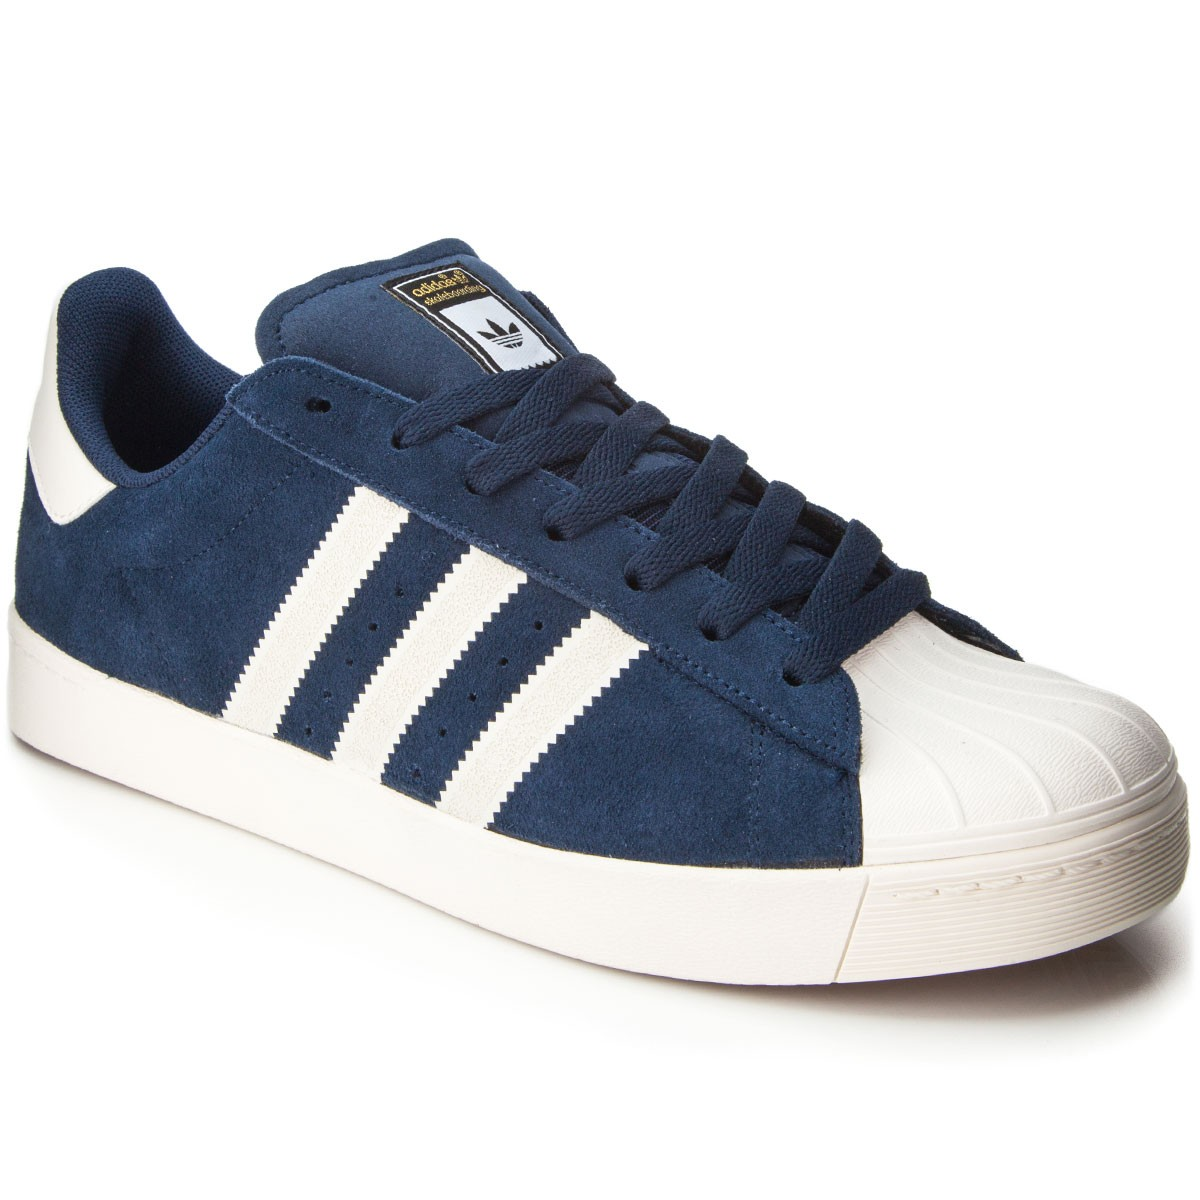 Cheap Adidas Originals Superstar 80s Suede Sneaker Urban Outfitters